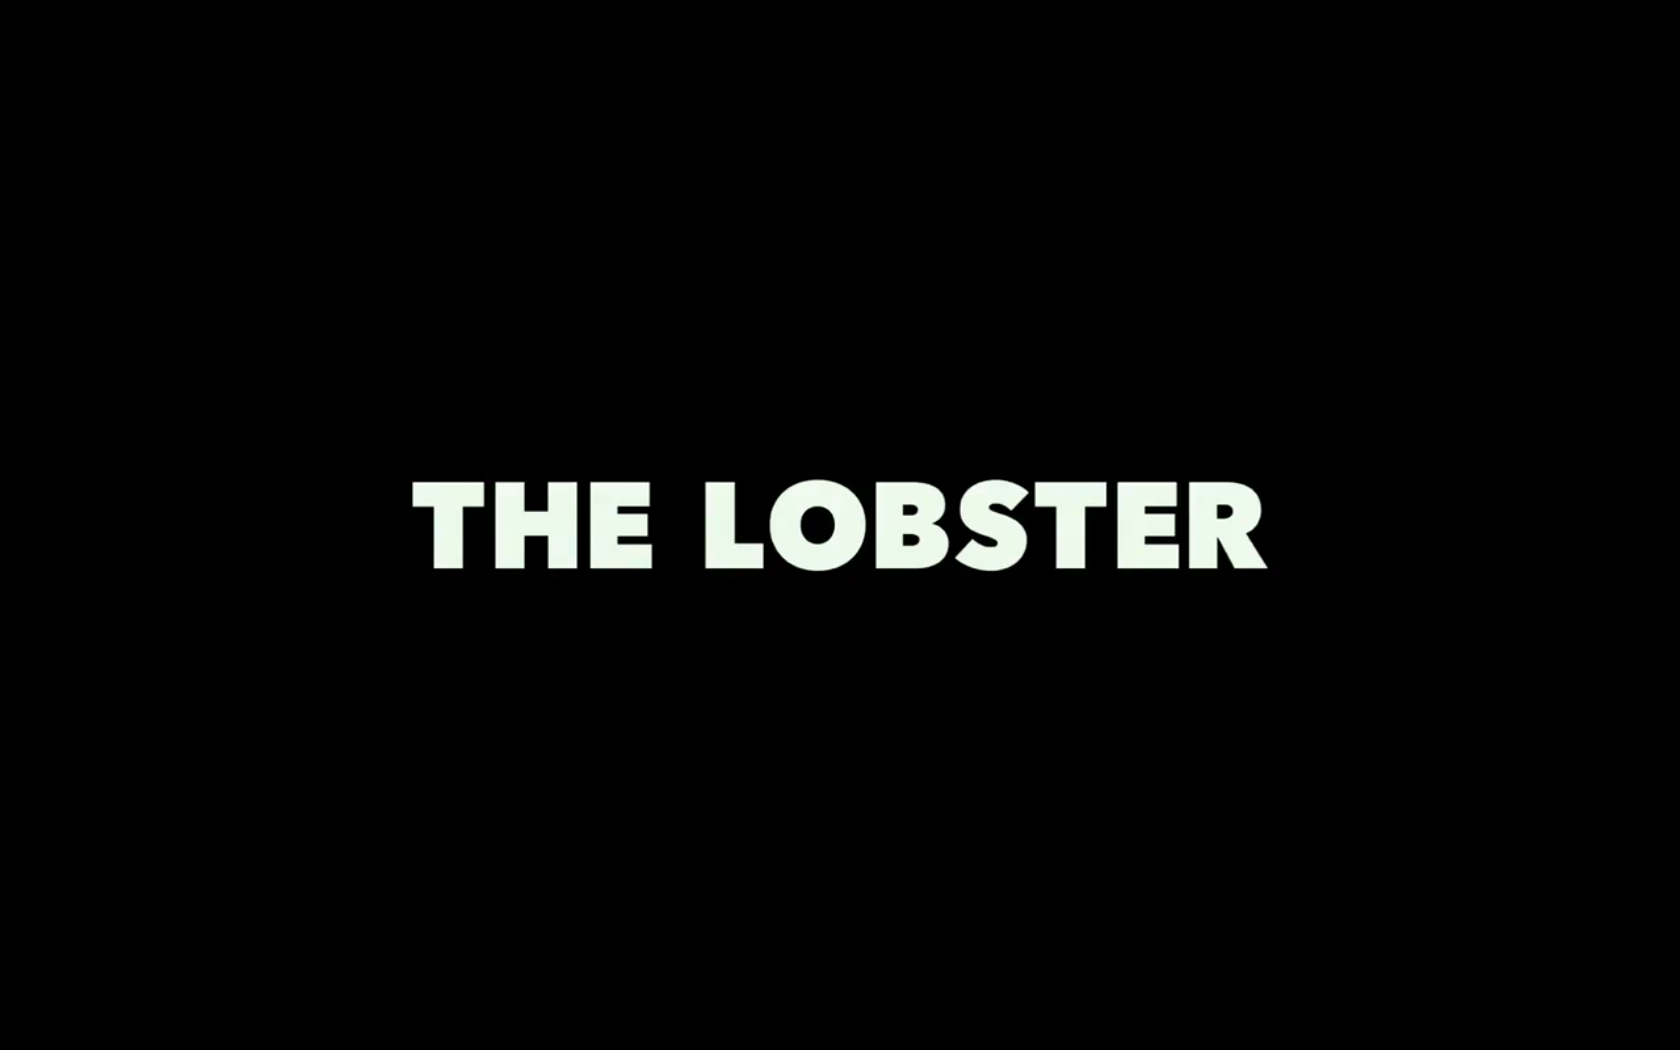 The Lobster Movie Title